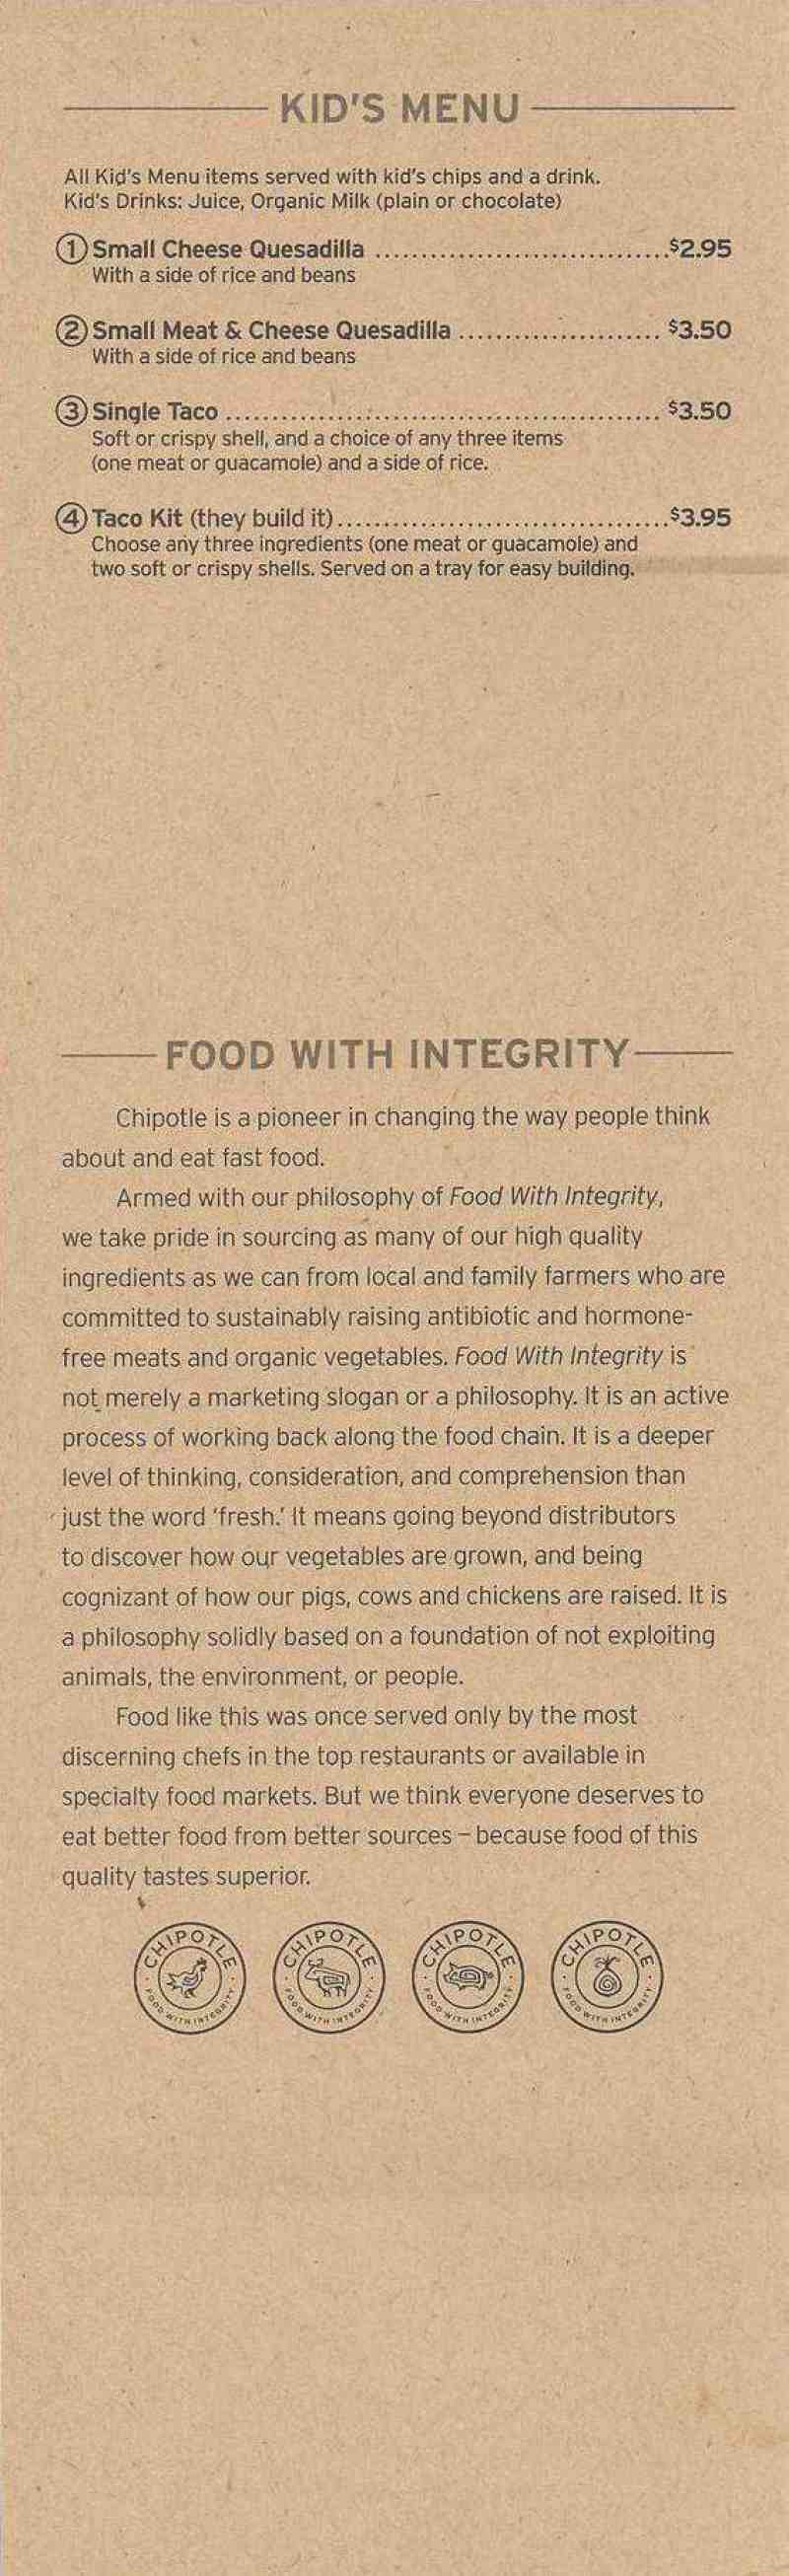 """chipotle the challenges of integrity Swot matrix and organizational strategic plan paper example 1: chipotle tows matrix strengths  chipotle has """"food with integrity"""" panera should look."""